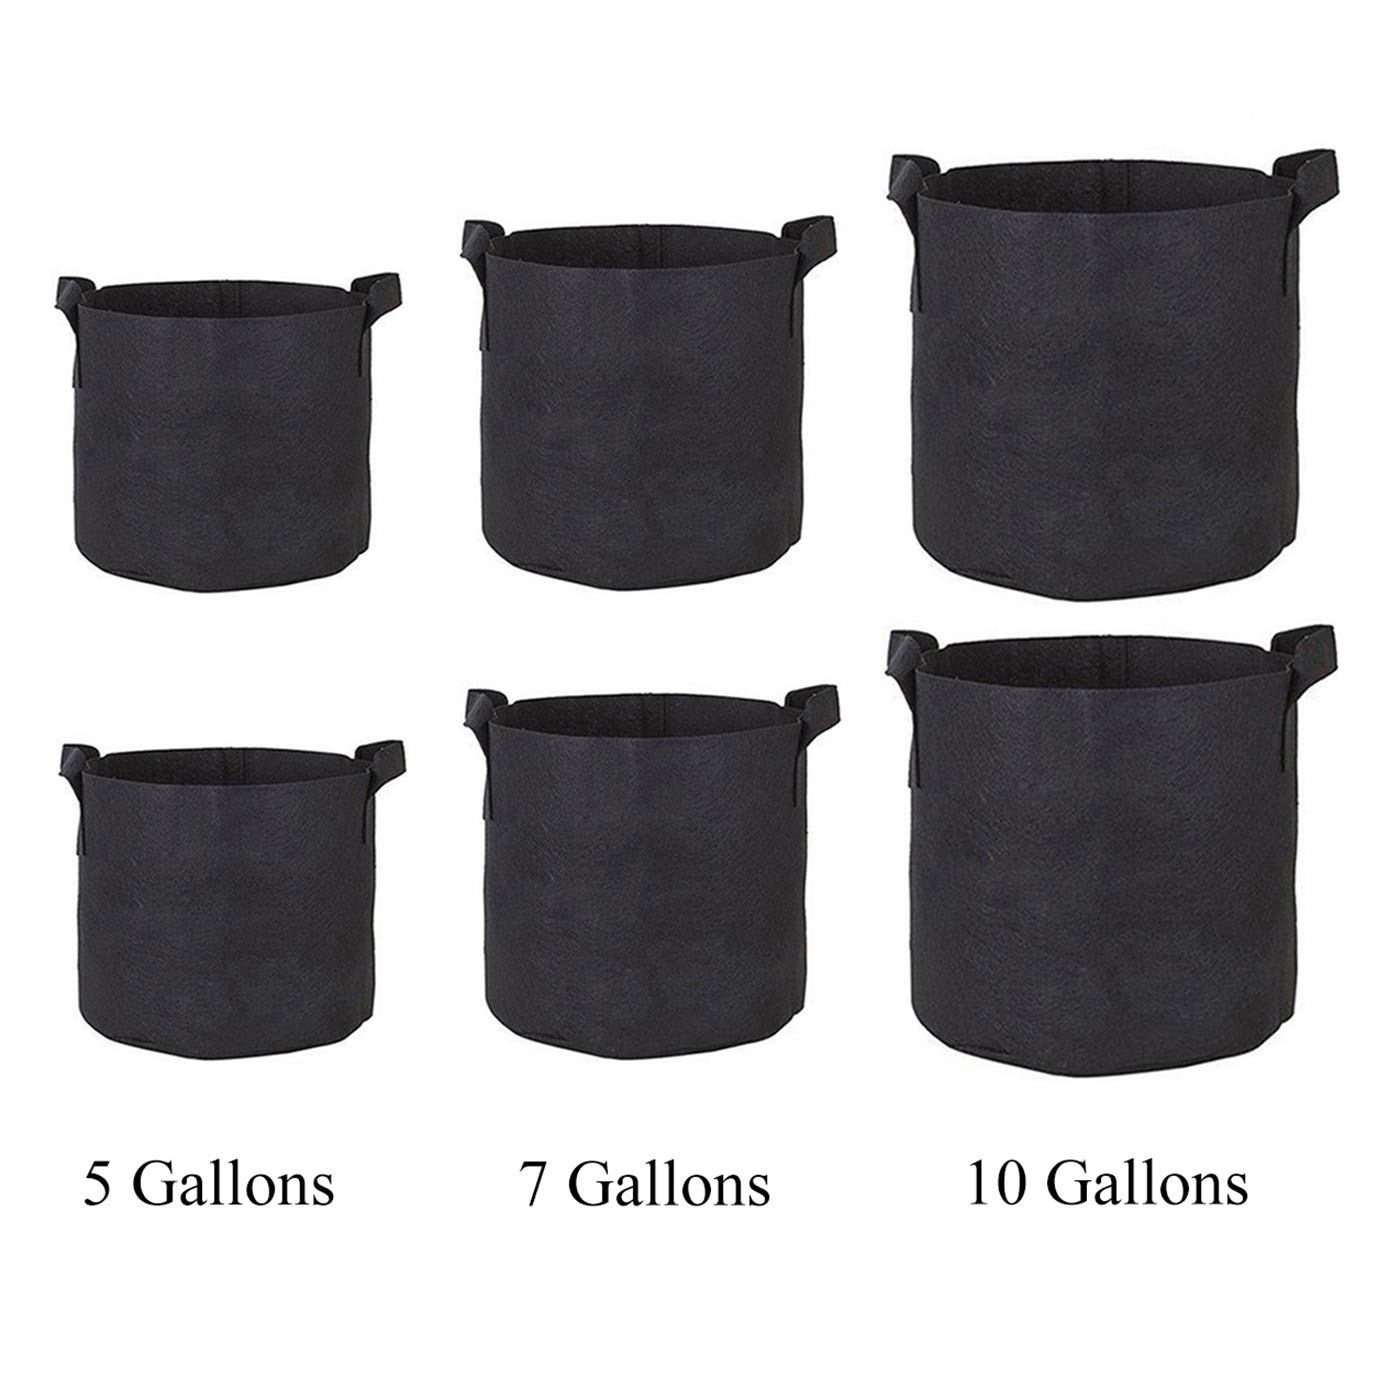 Homezal Grow Bags 5 Gallon 7 Gallon 10 Gallon, 6 Pack Durable Fabric Planting Pots with Strap Handles, Perfect for Vegetables and Fruits